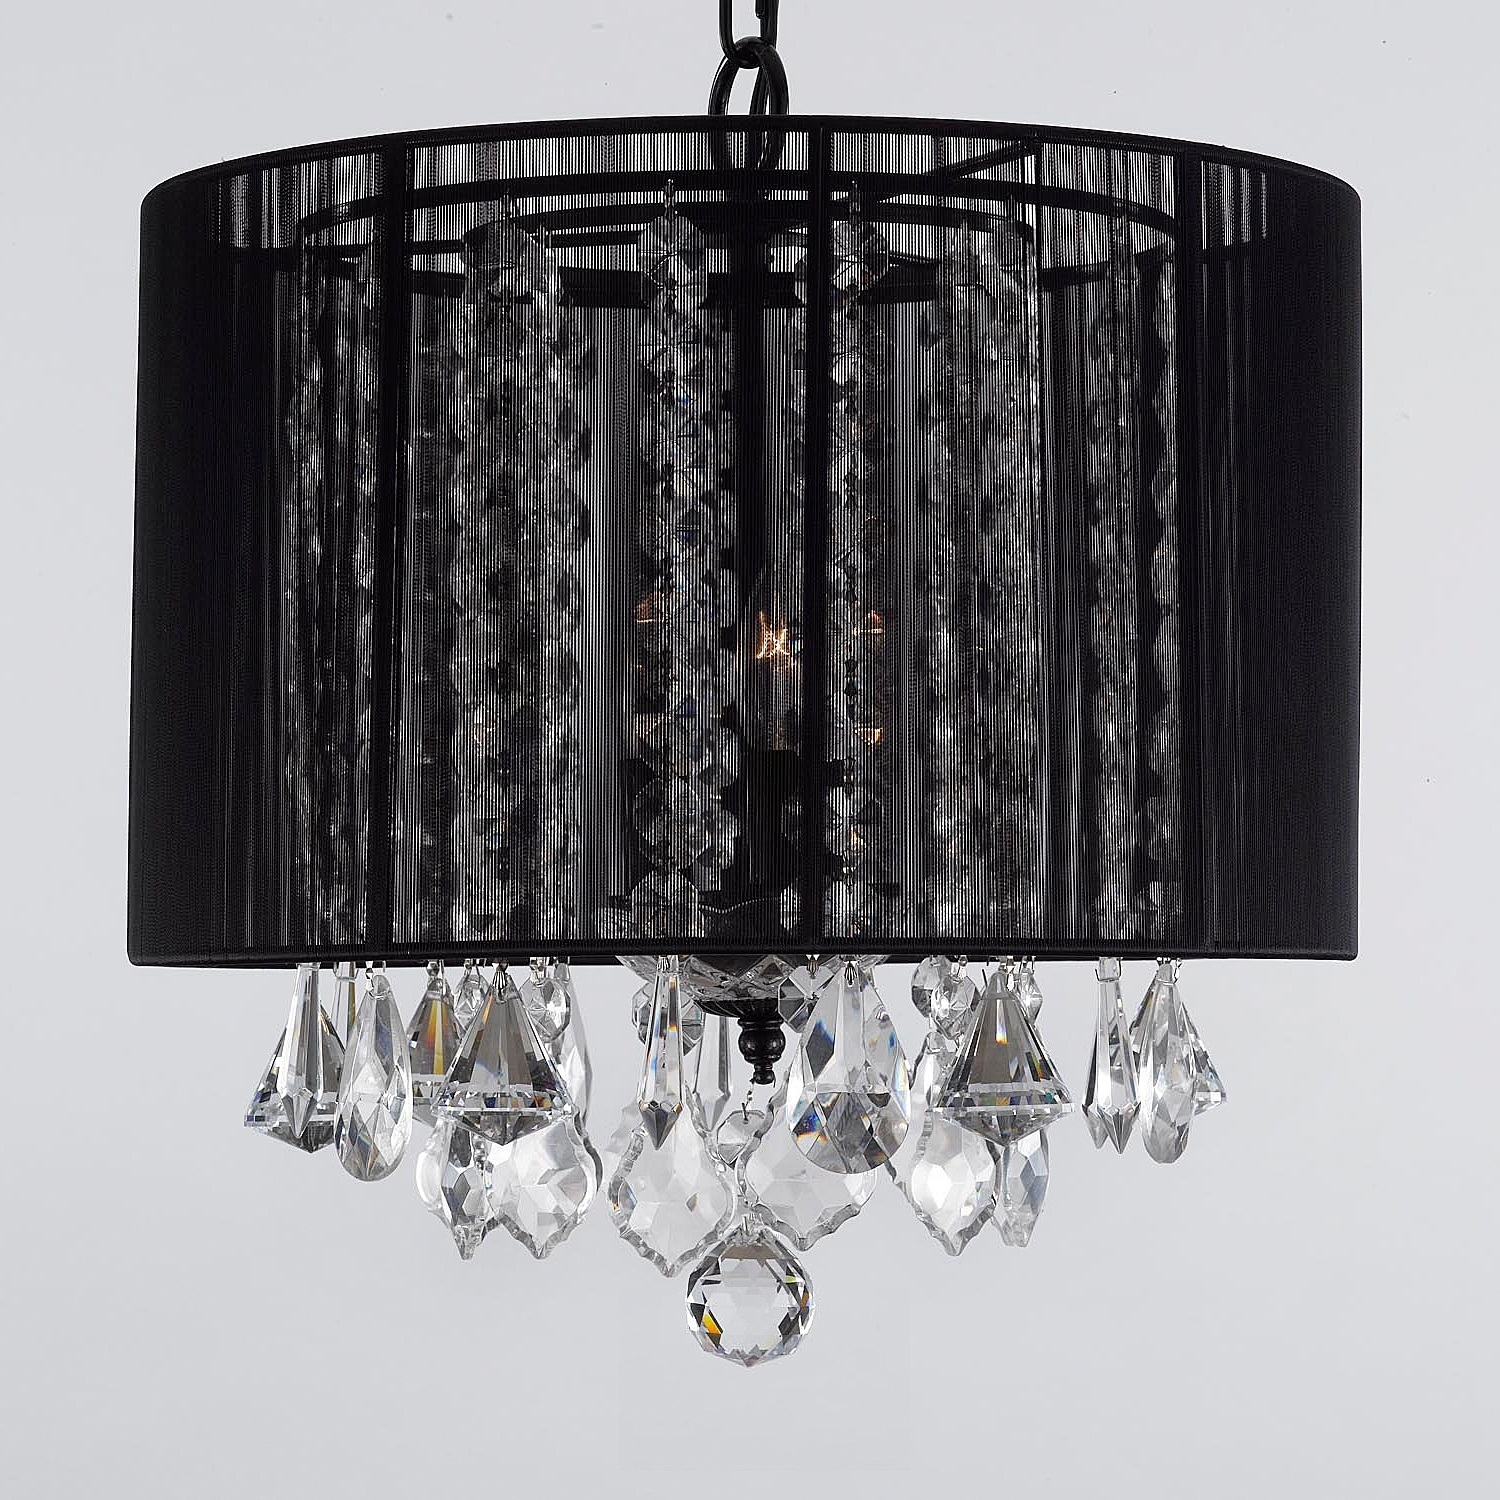 Famous Chandeliers With Black Shades With Regard To G7 Black/604/3 Gallery Chandeliers With Shades Crystal Chandelier (View 7 of 15)